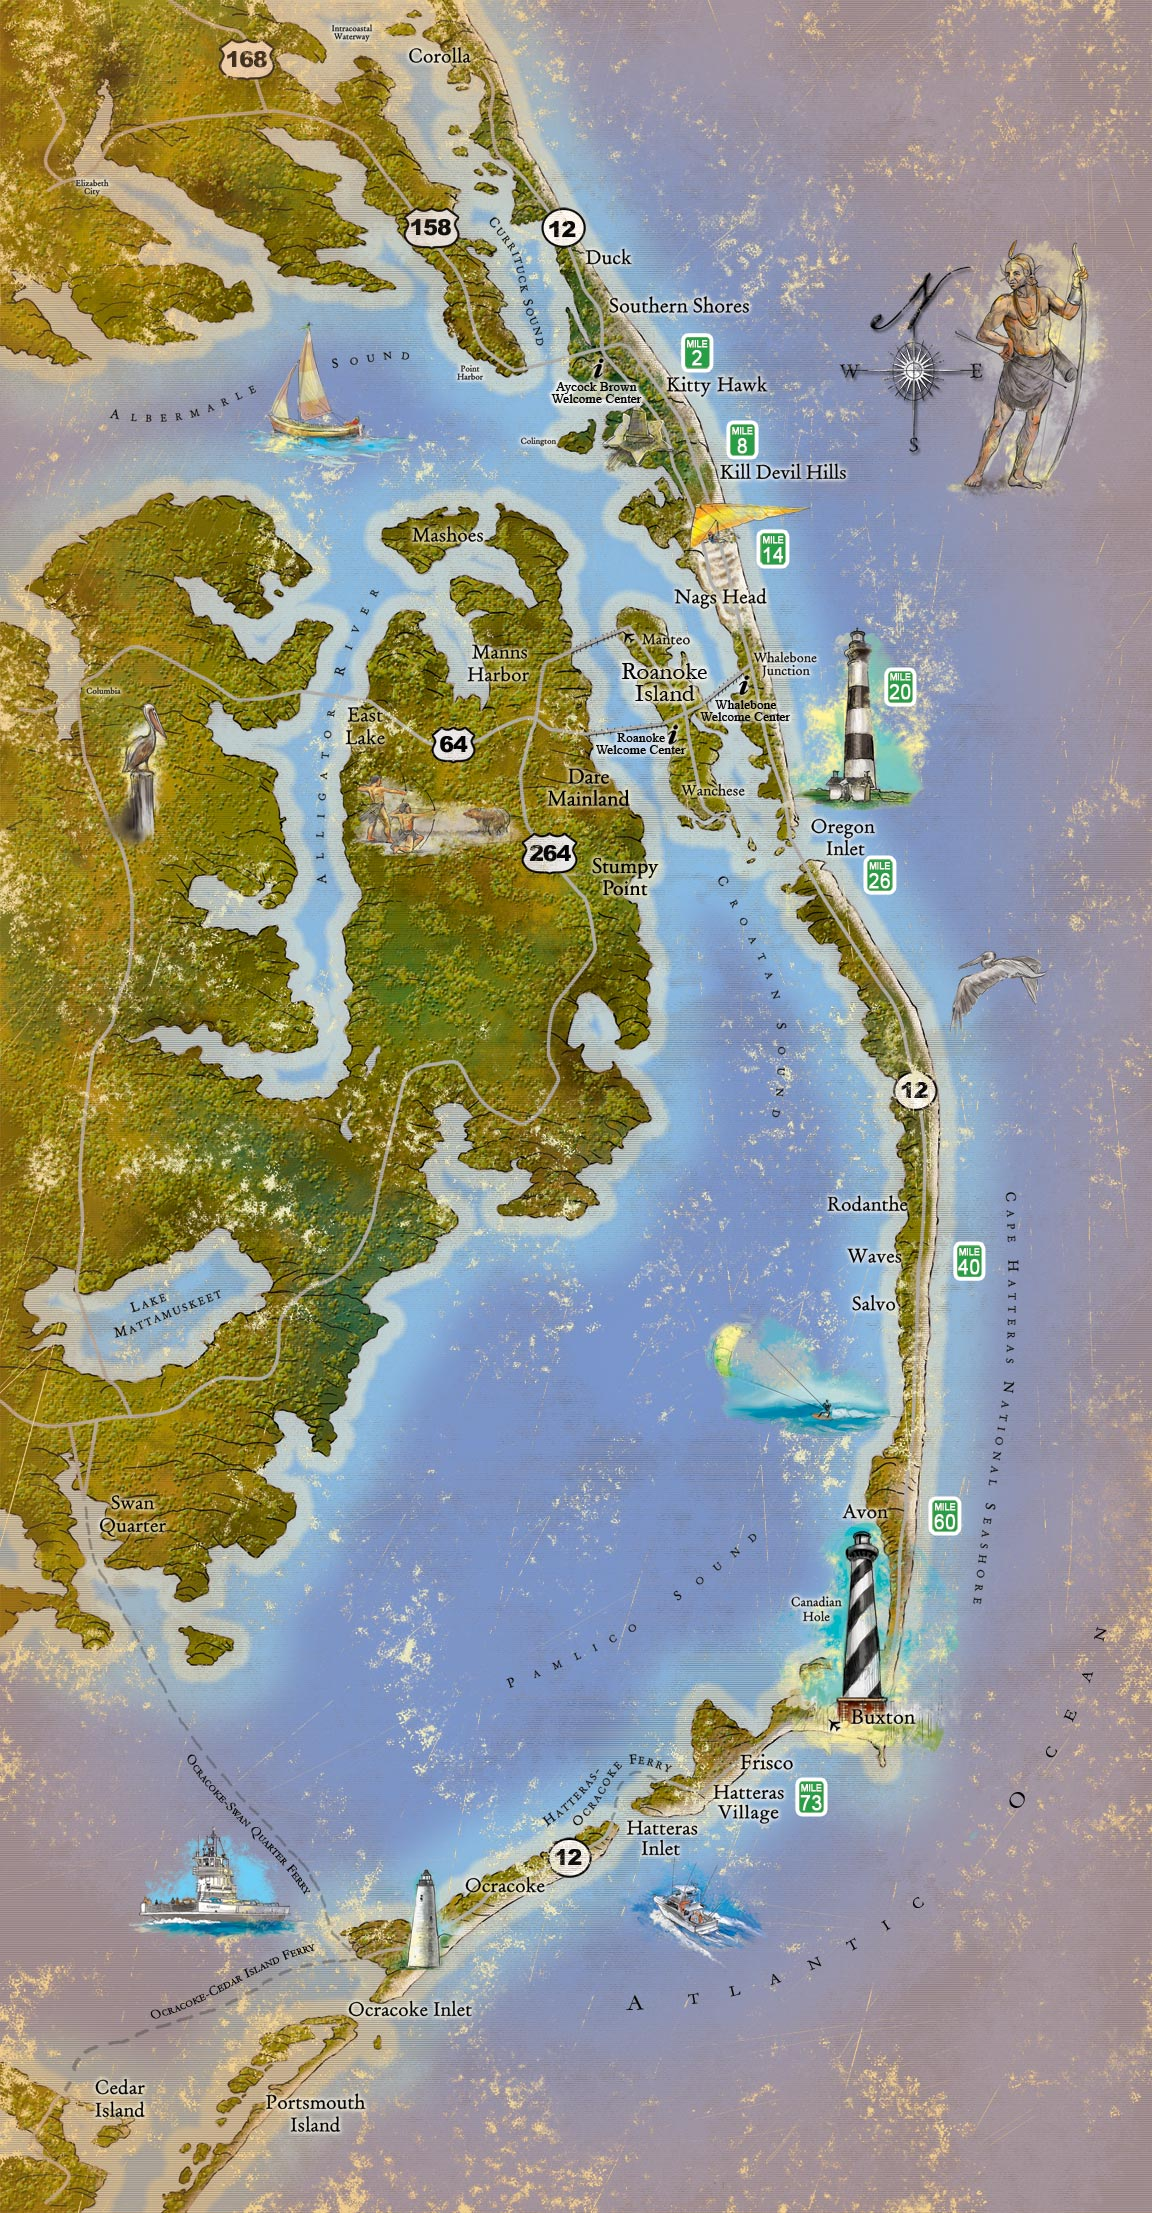 Outer Banks Tourist Map - Outer Banks North Carolina • mappery on